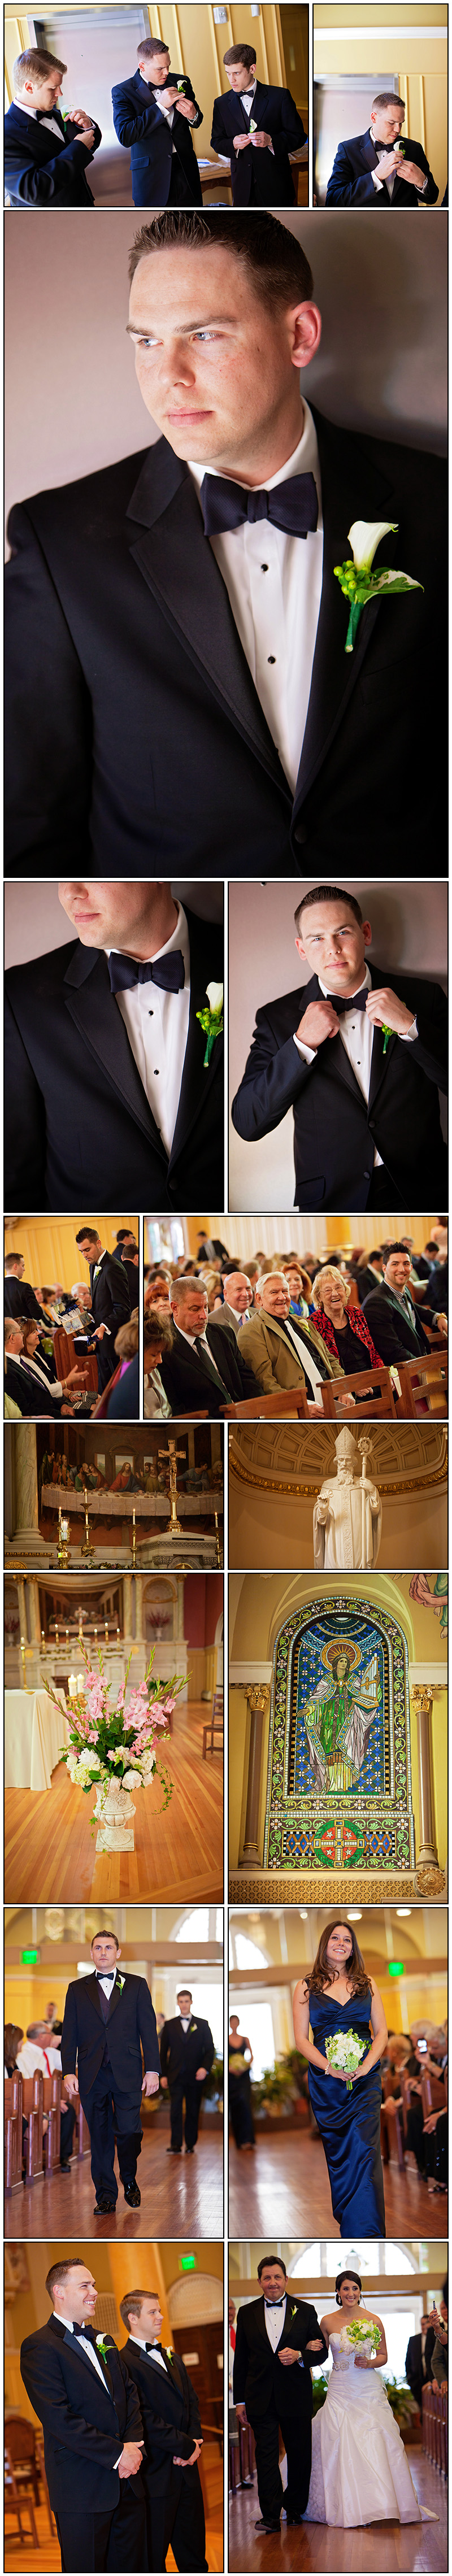 WEDDING PHOTOS AT ST CECILIAS IN BOSTON MA